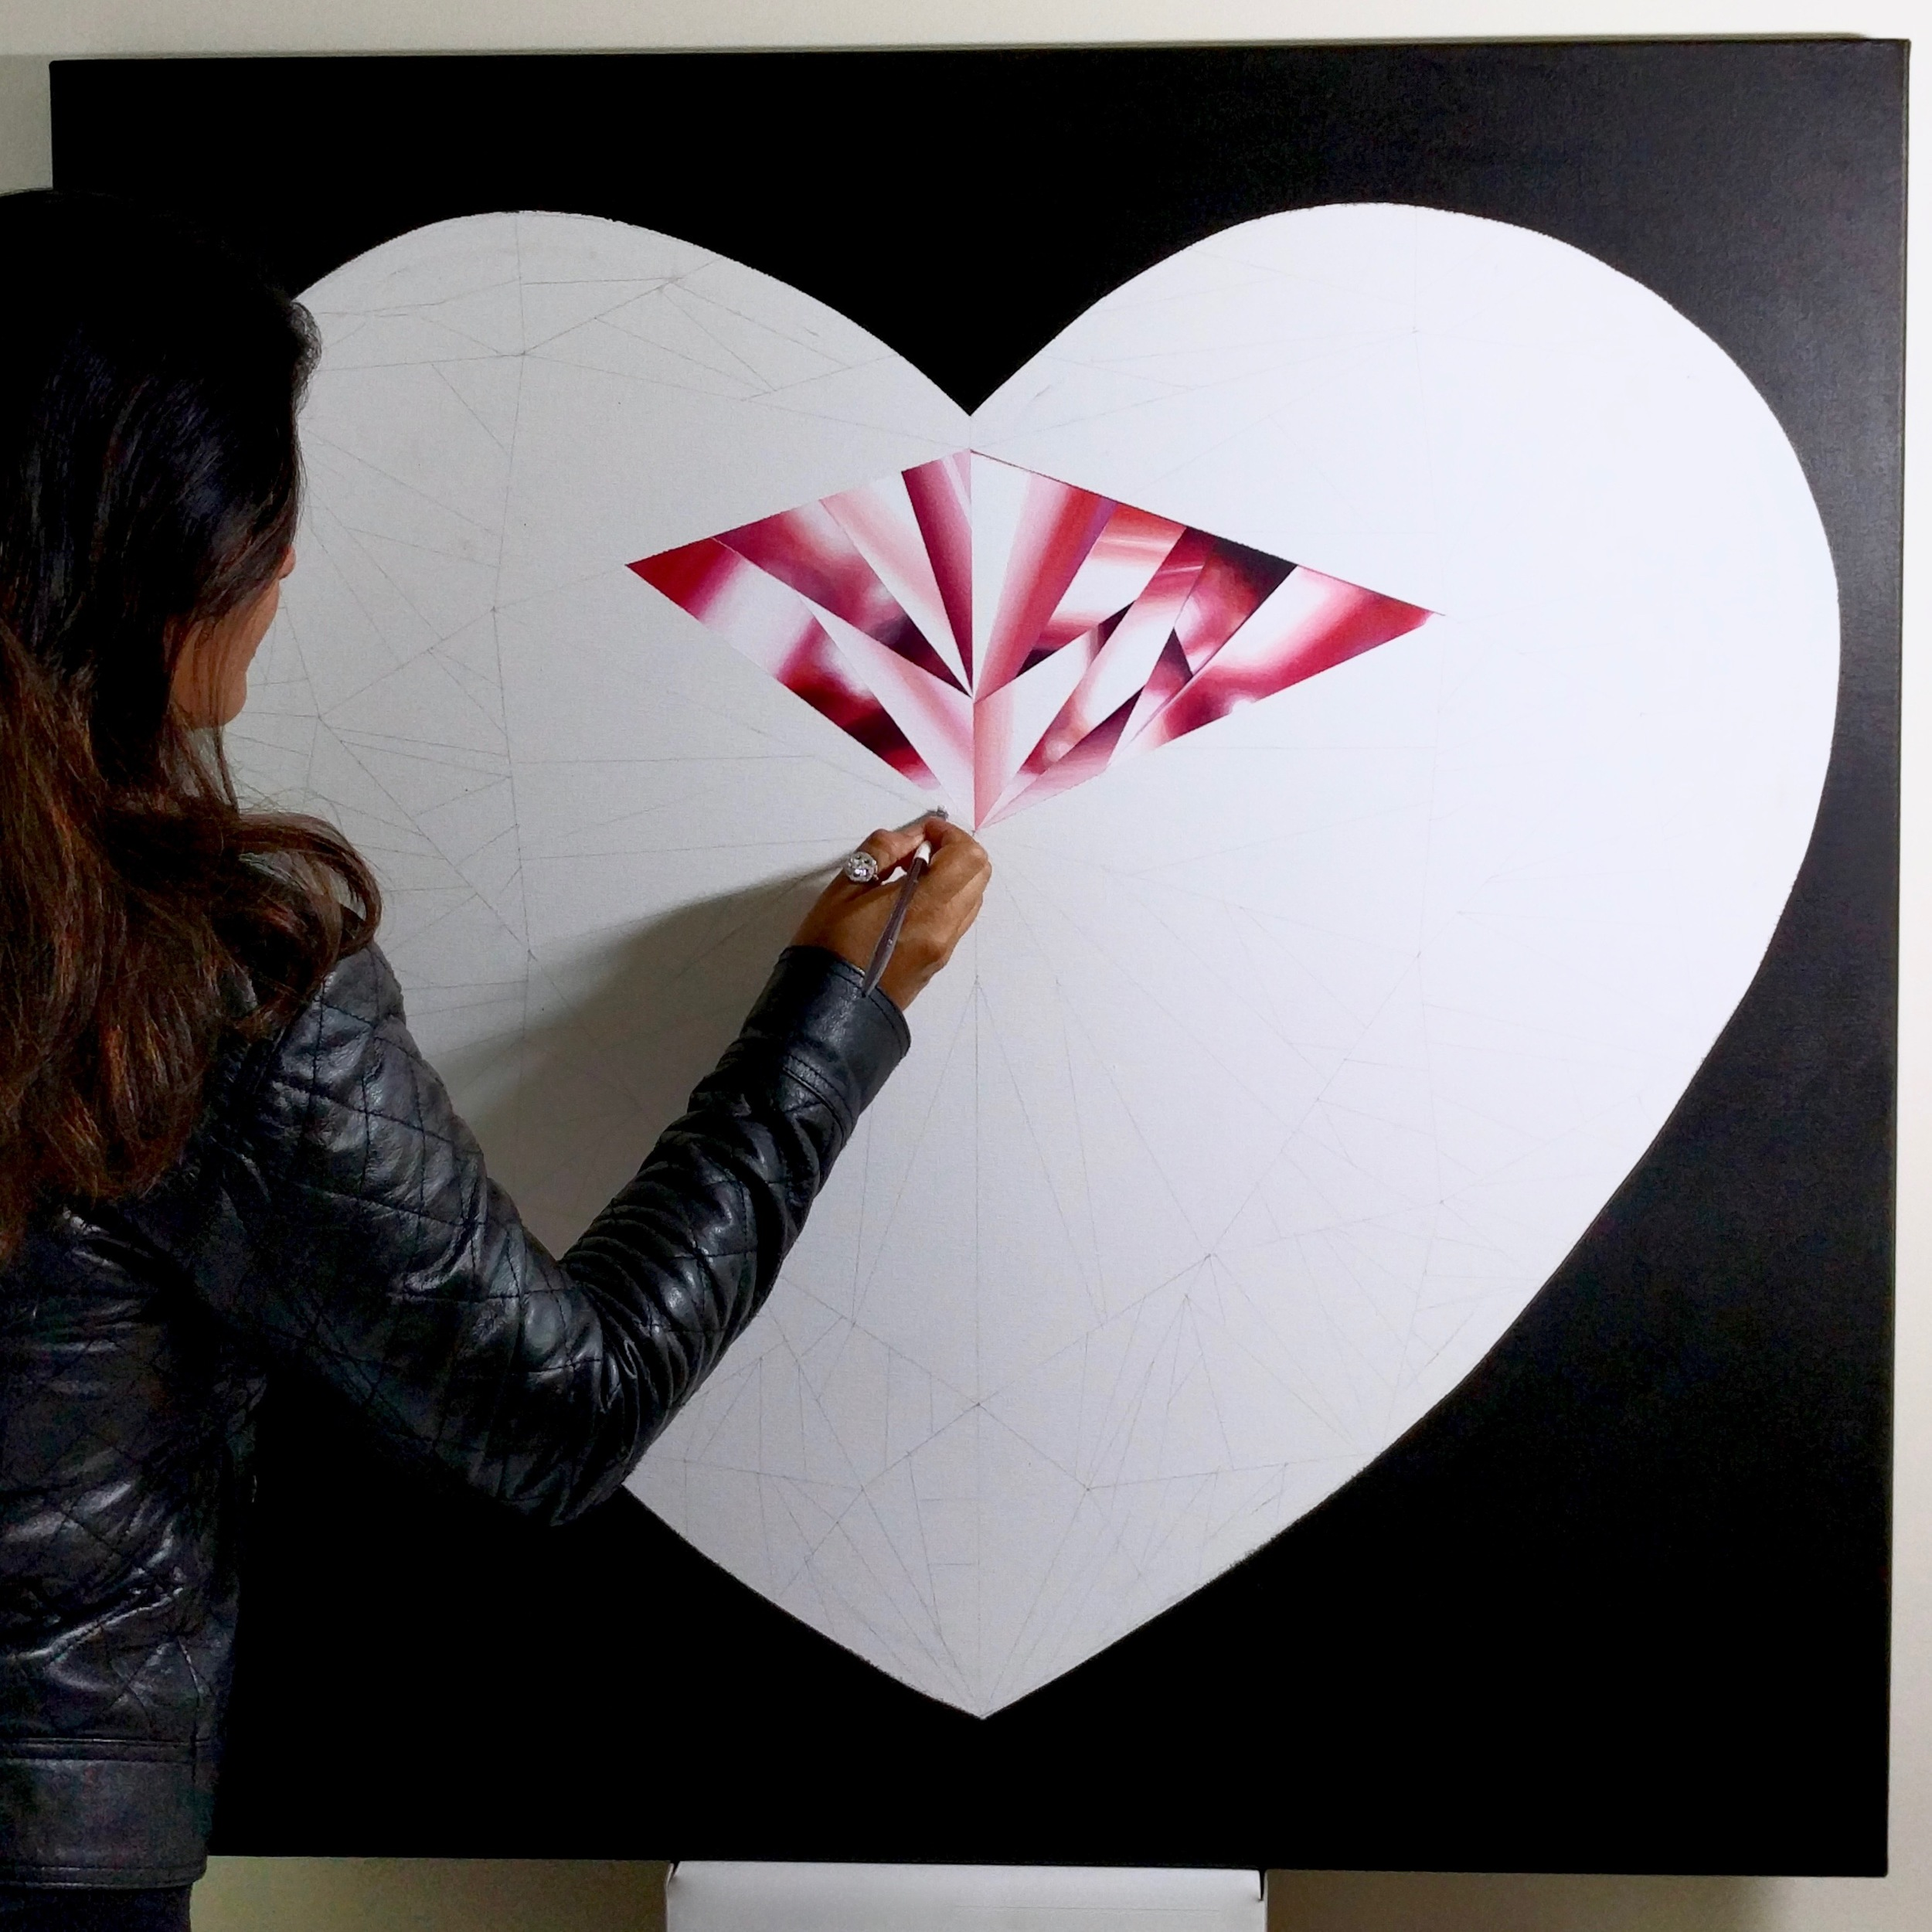 Life full of passion is a beautiful one! Reena Ahluwalia in her studio working on the 'Passionate Heart' - Portrait of a Pink Heart-Shaped Diamond. 36 x 36 inches. Acrylic on Canvas. ©Reena Ahluwalia